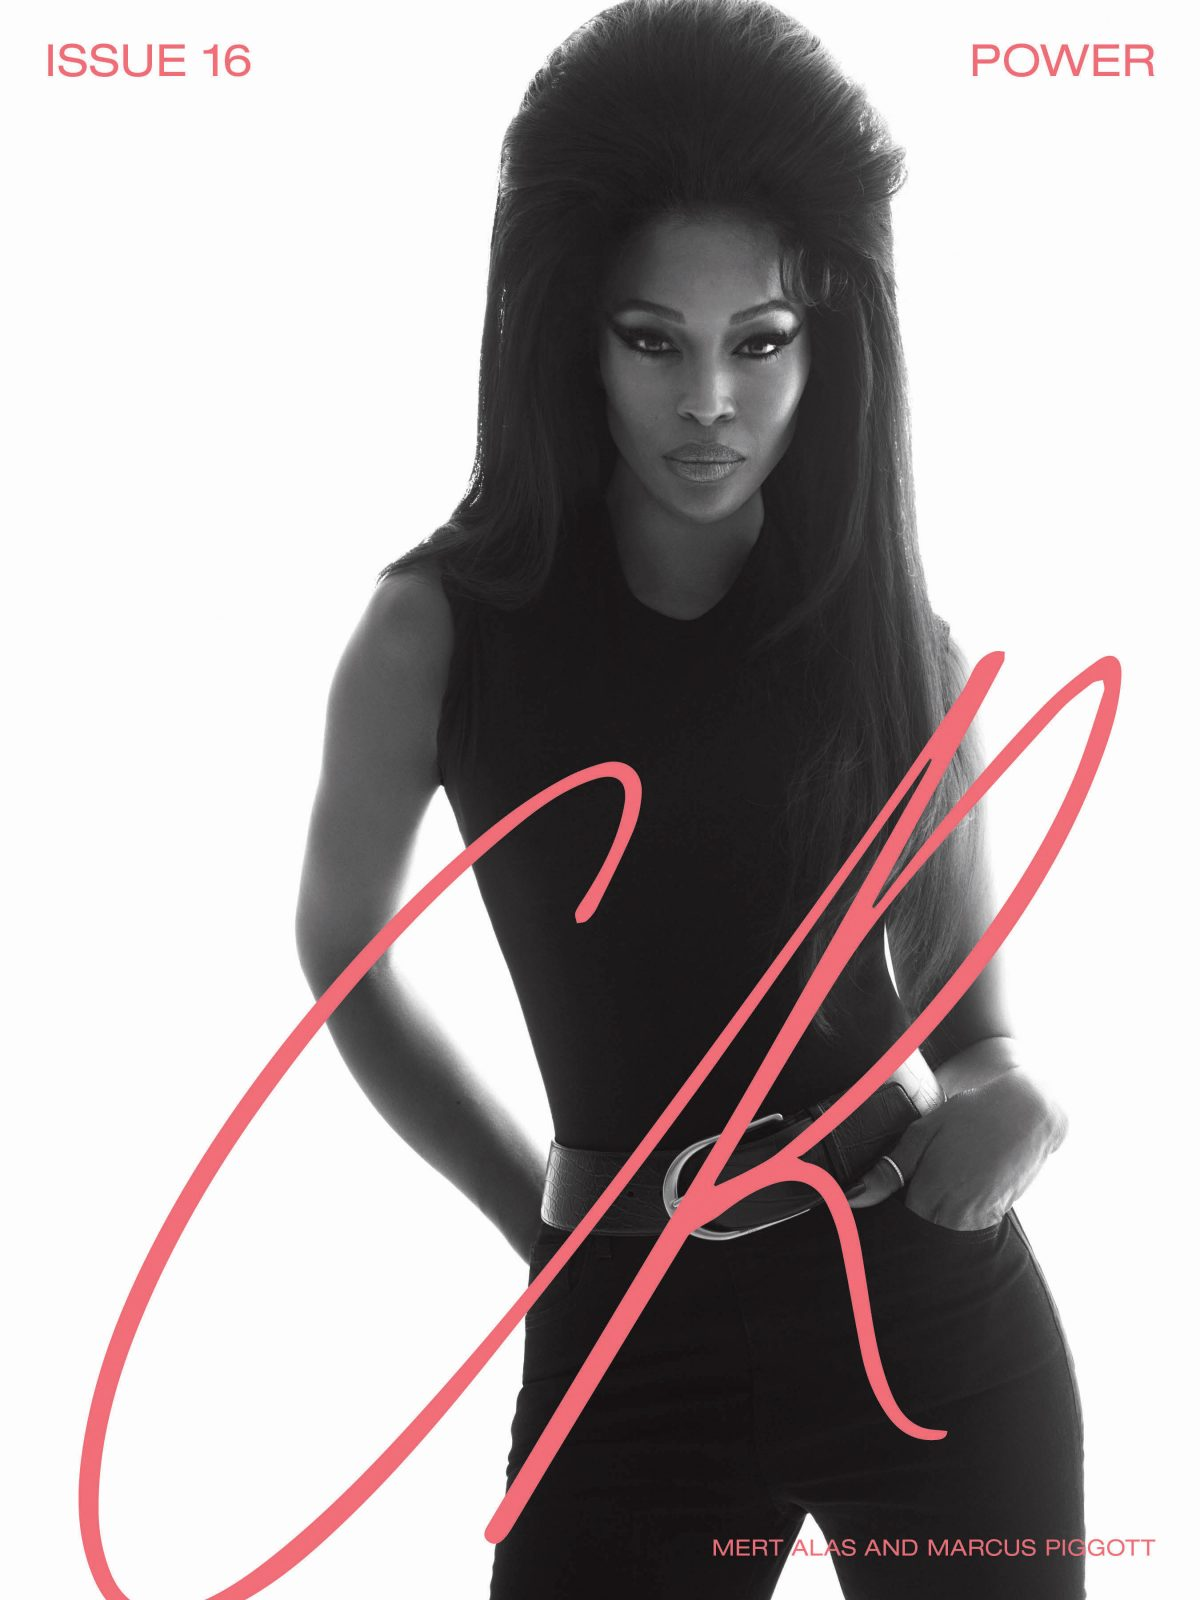 NAOMI CAMPBELL COVERS ISSUE #16 OF CR FASHION BOOK